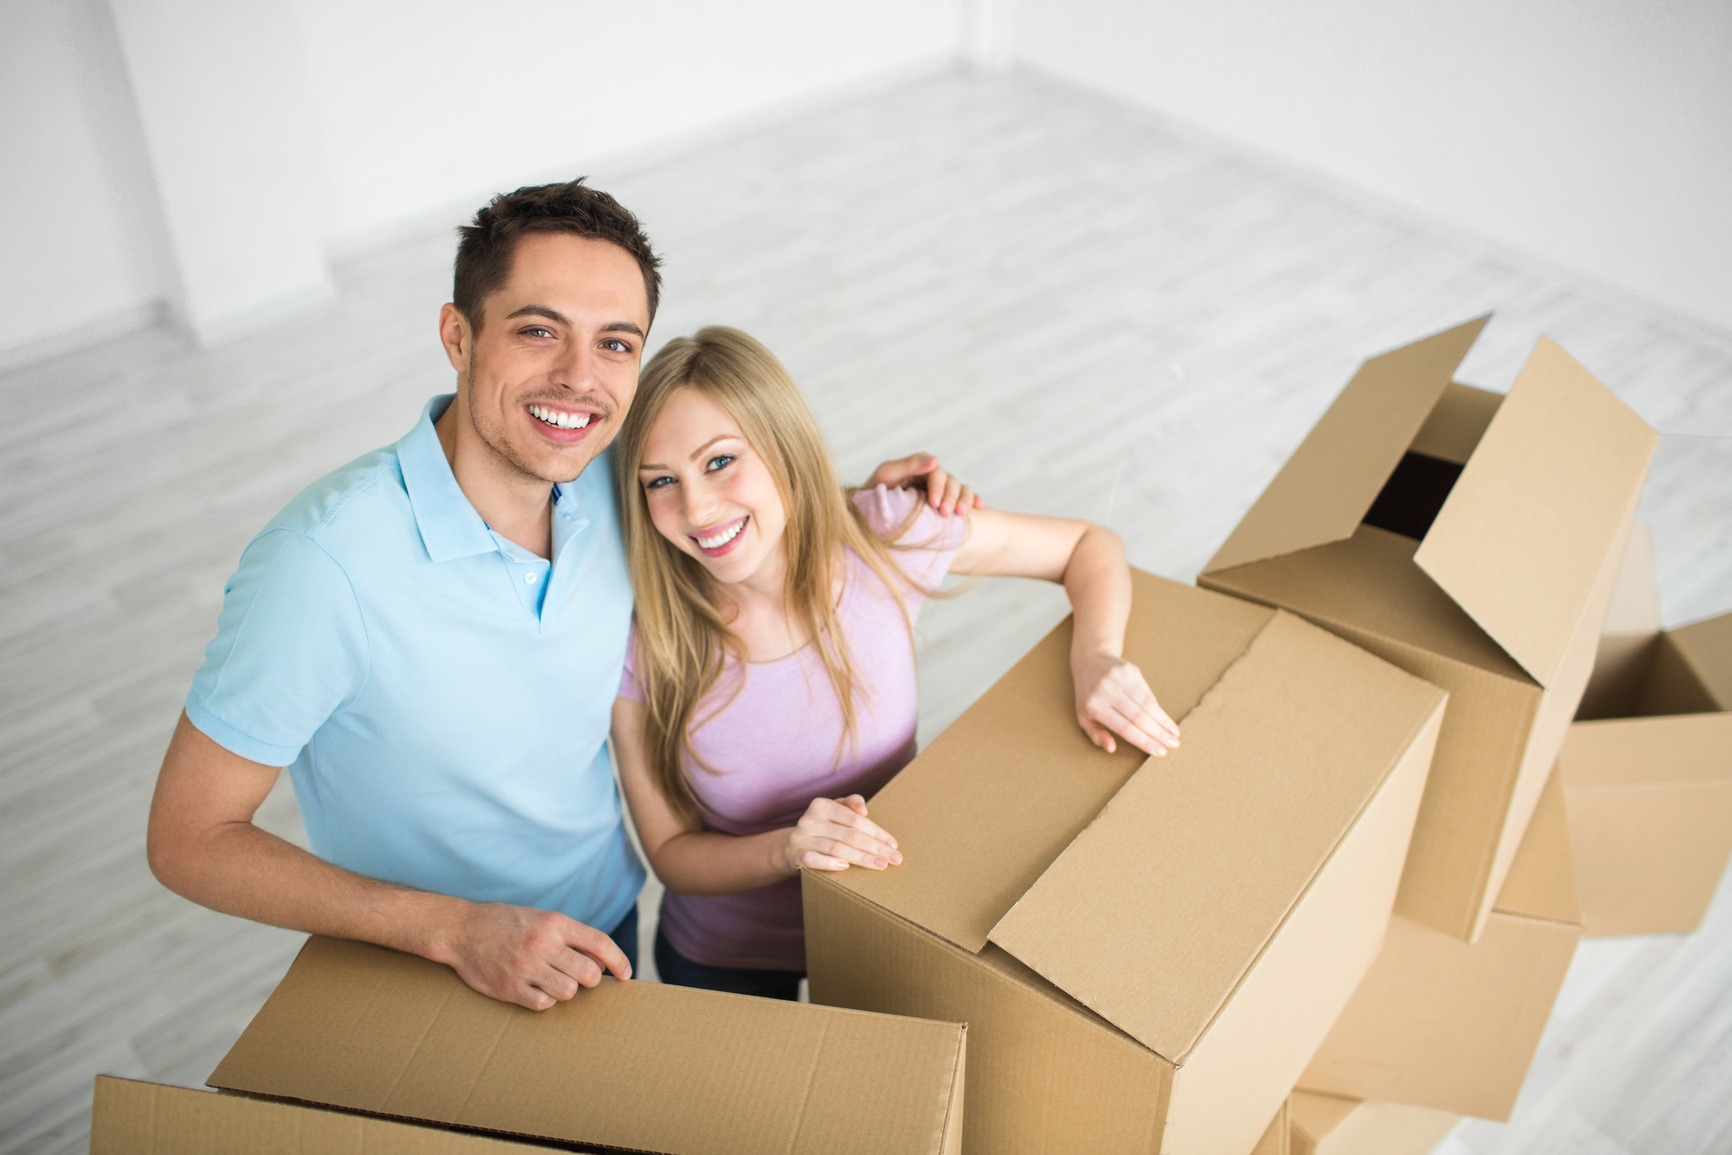 Dynamics of Packers and Movers Industry Leading to Best Customer Experience